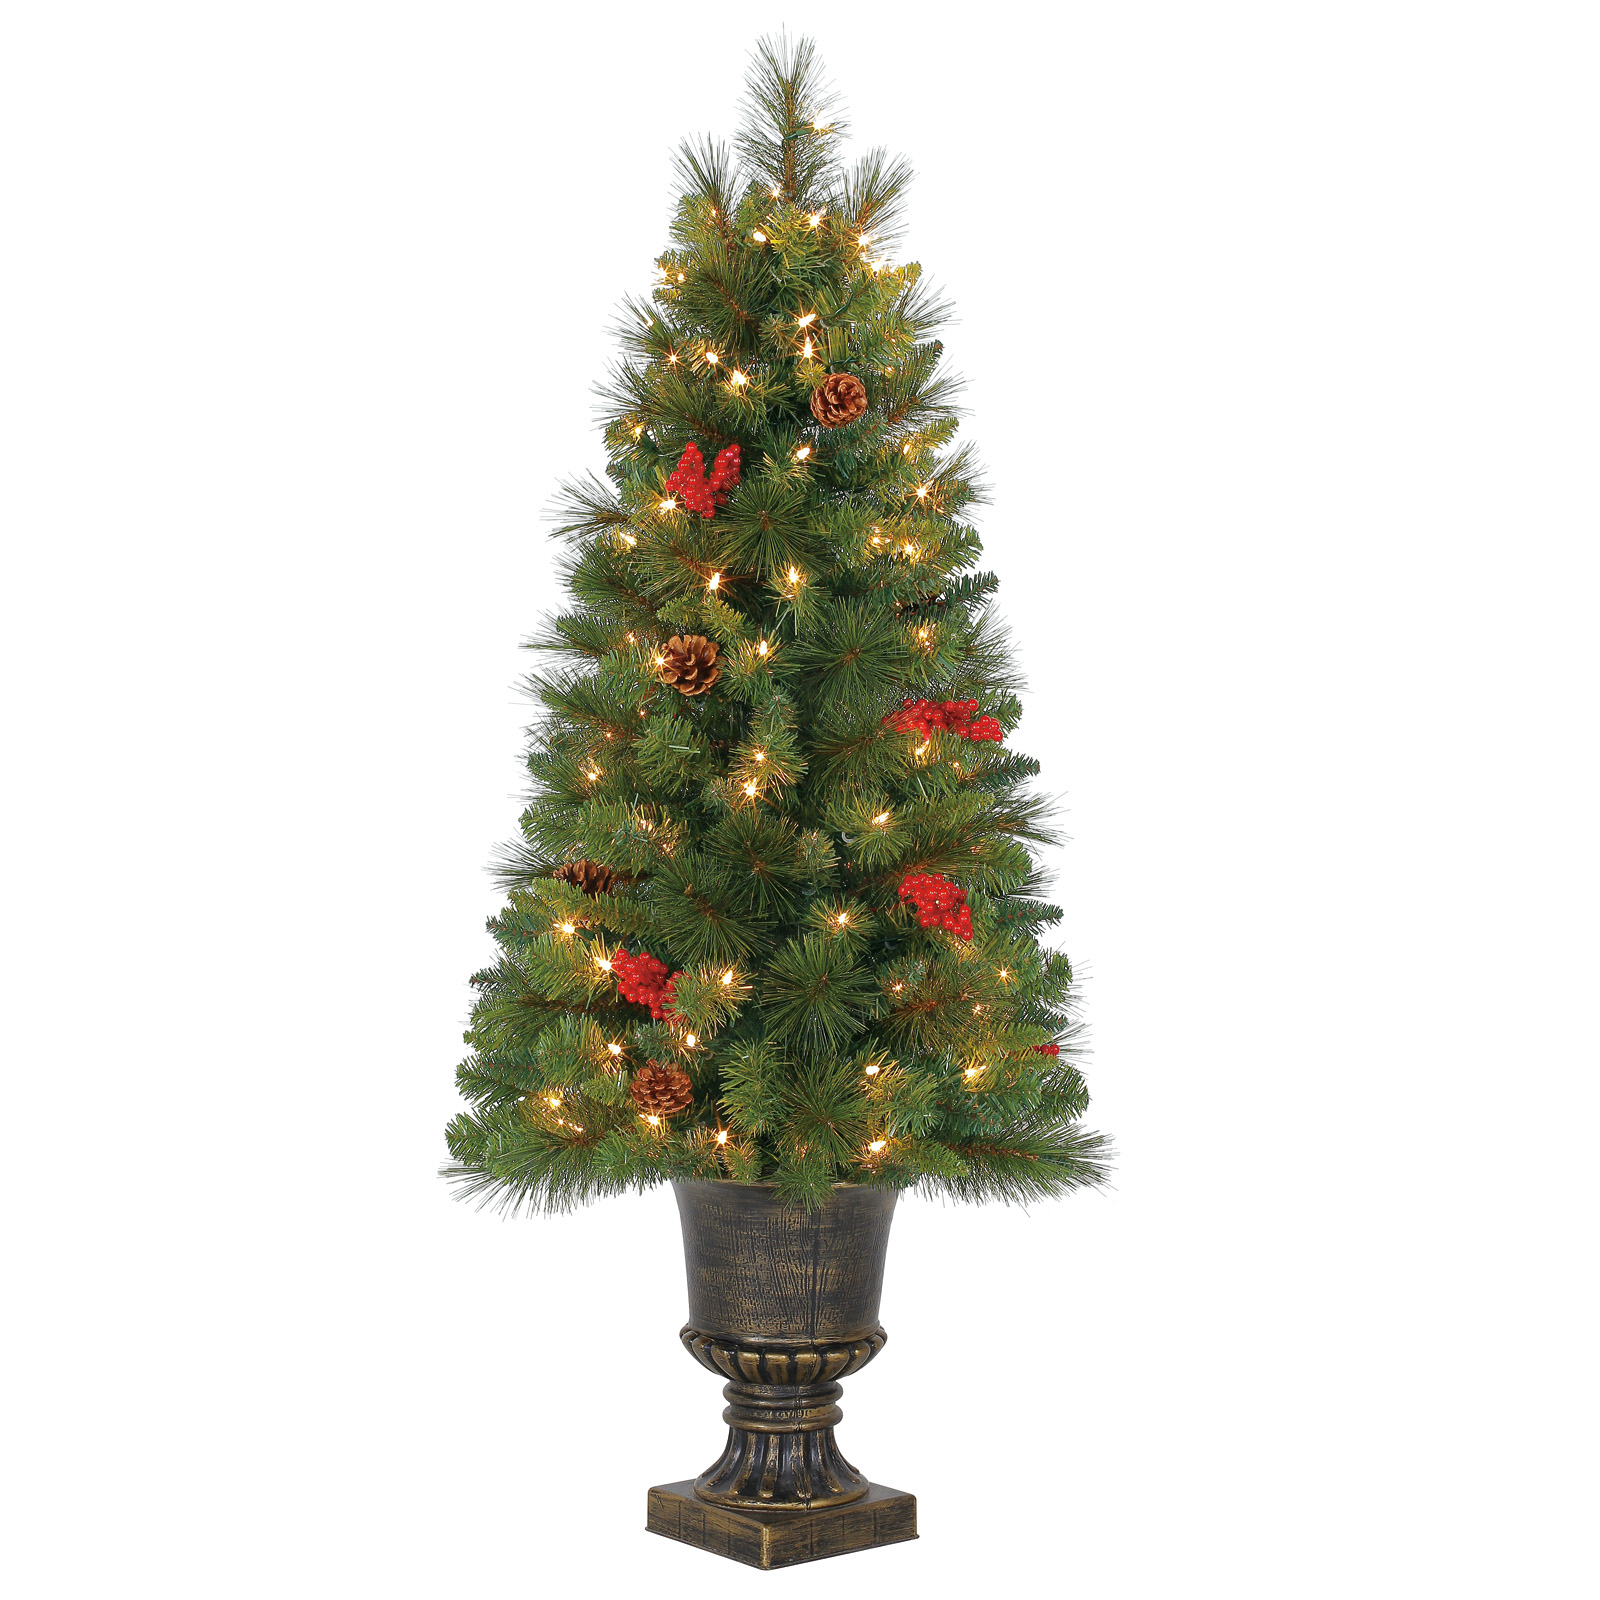 Buy the 4 Ft. Pre-Lit Green Verona Artificial Christmas Tree ...